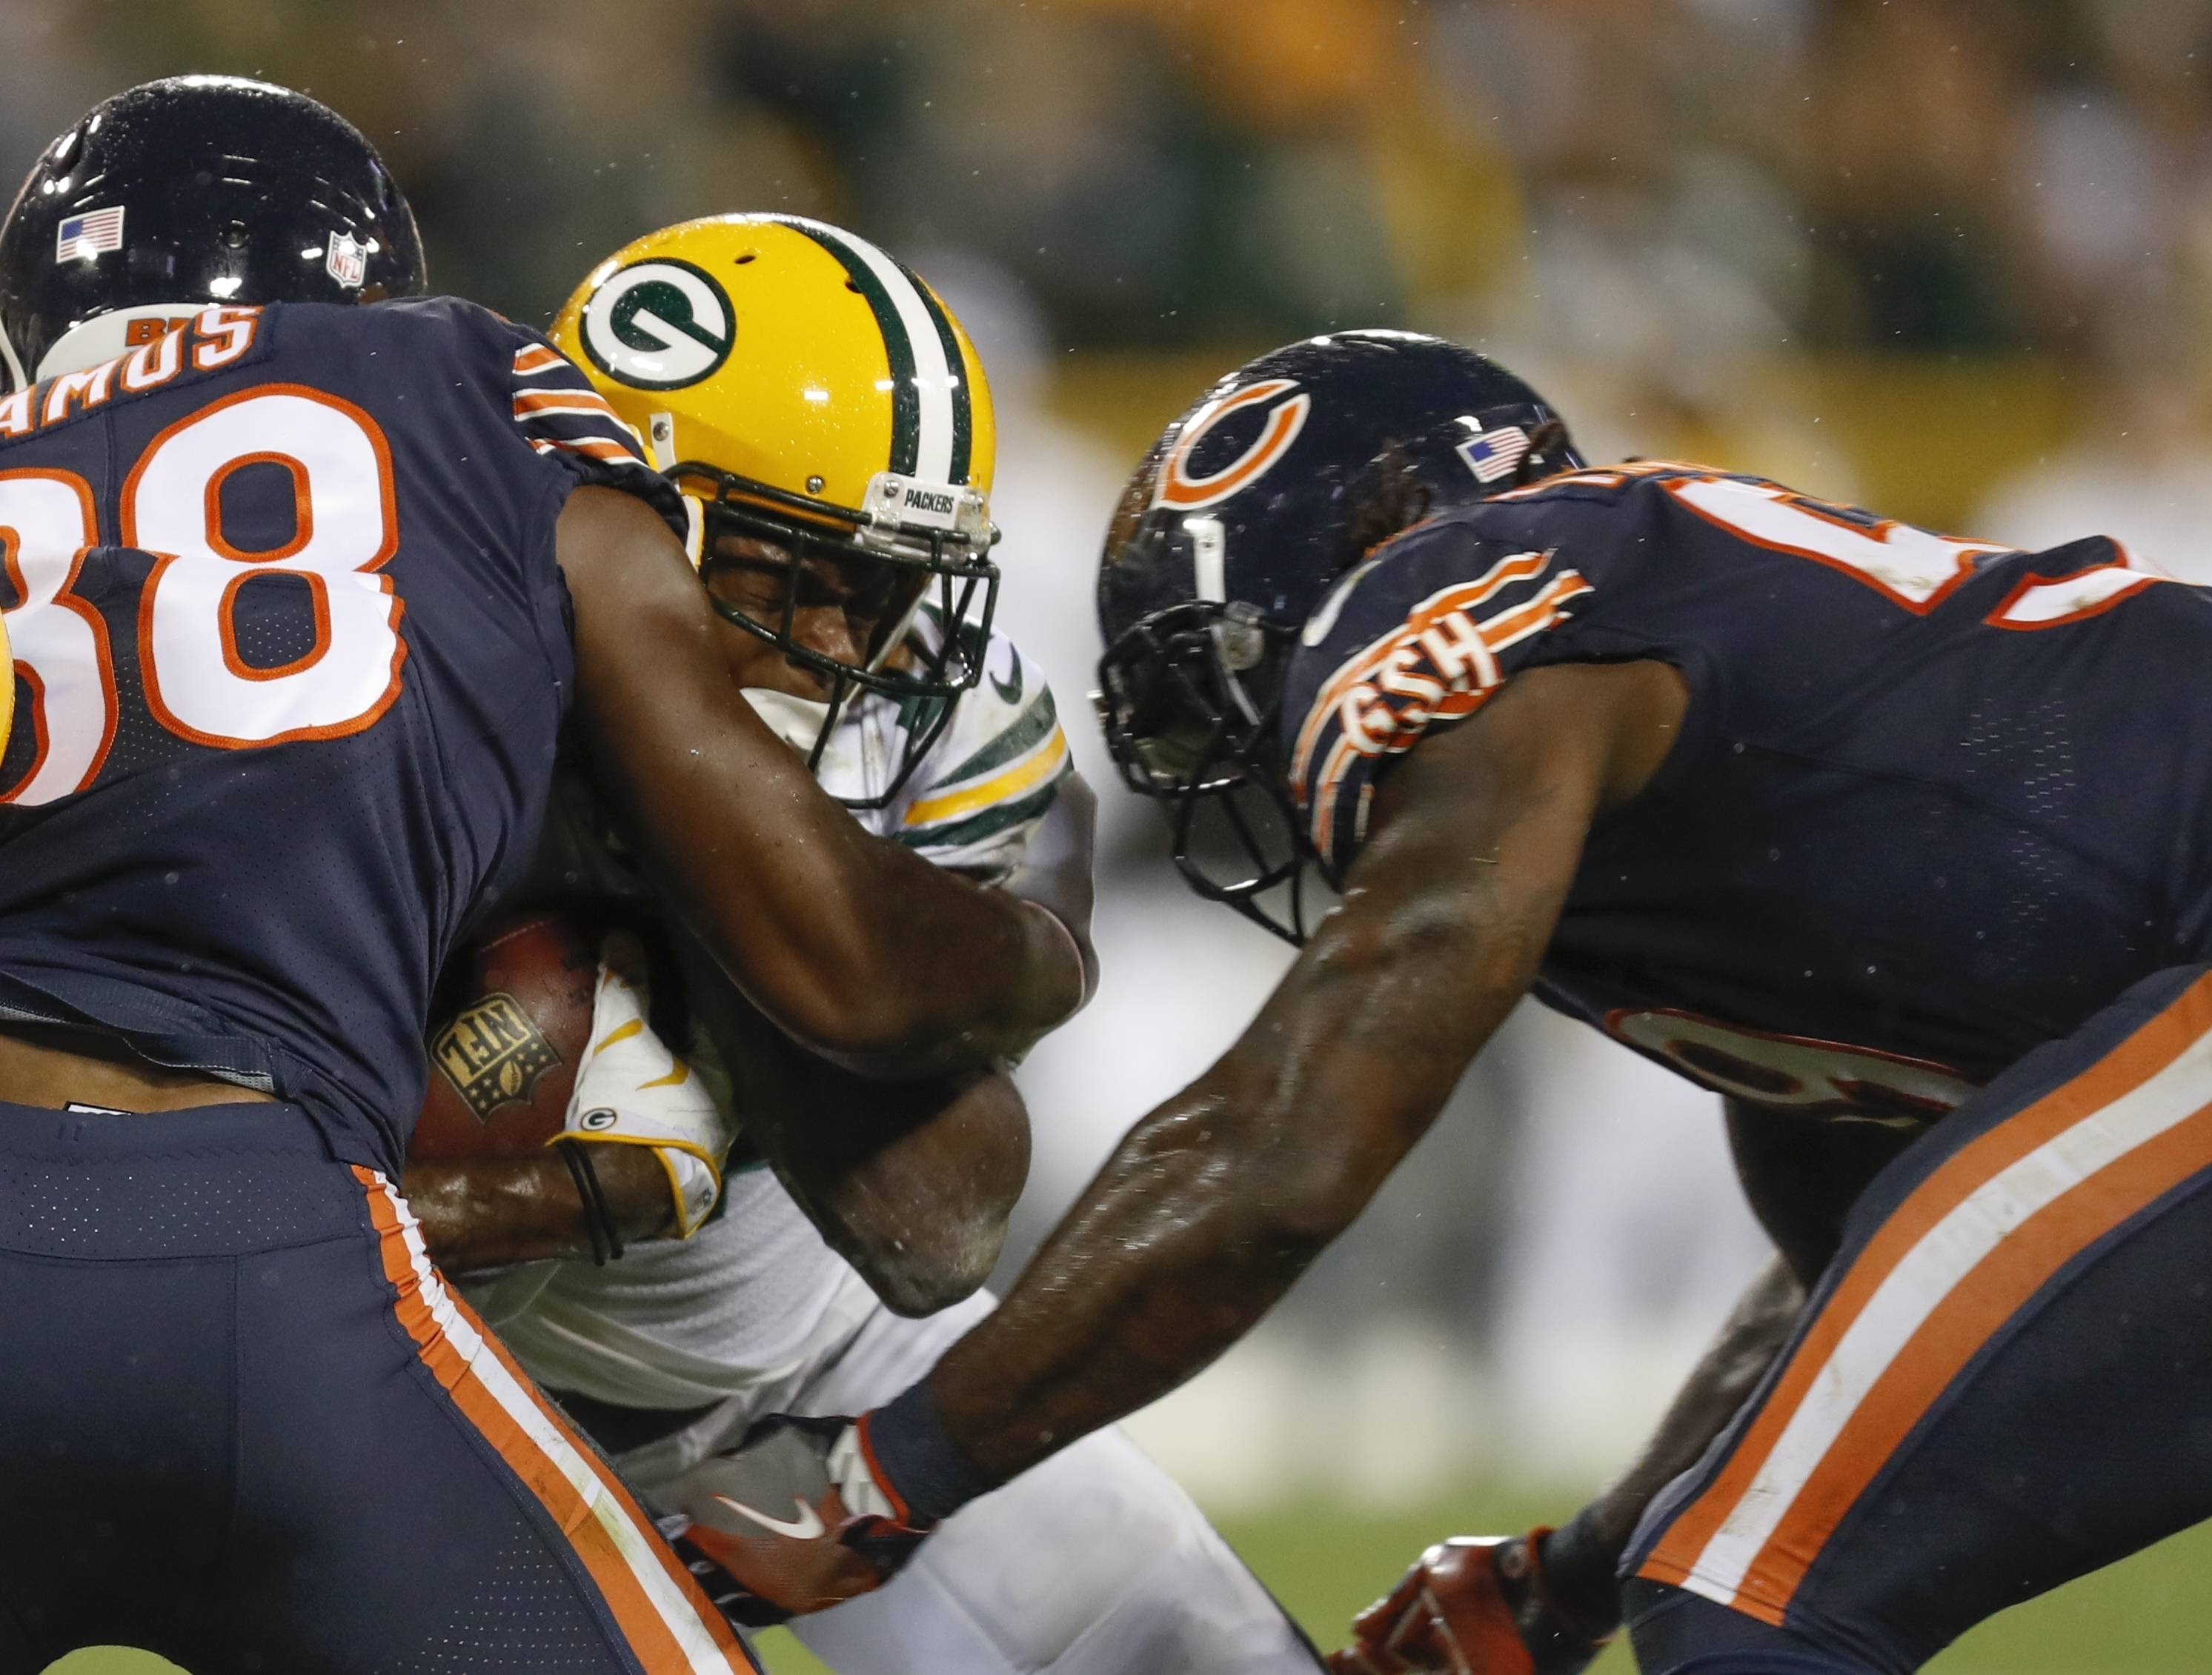 Bears linebacker Danny Trevathan has been suspended without pay for two games by the NFL for a violation of safety-related playing rules in Thursday night's game against the Green Bay Packers.